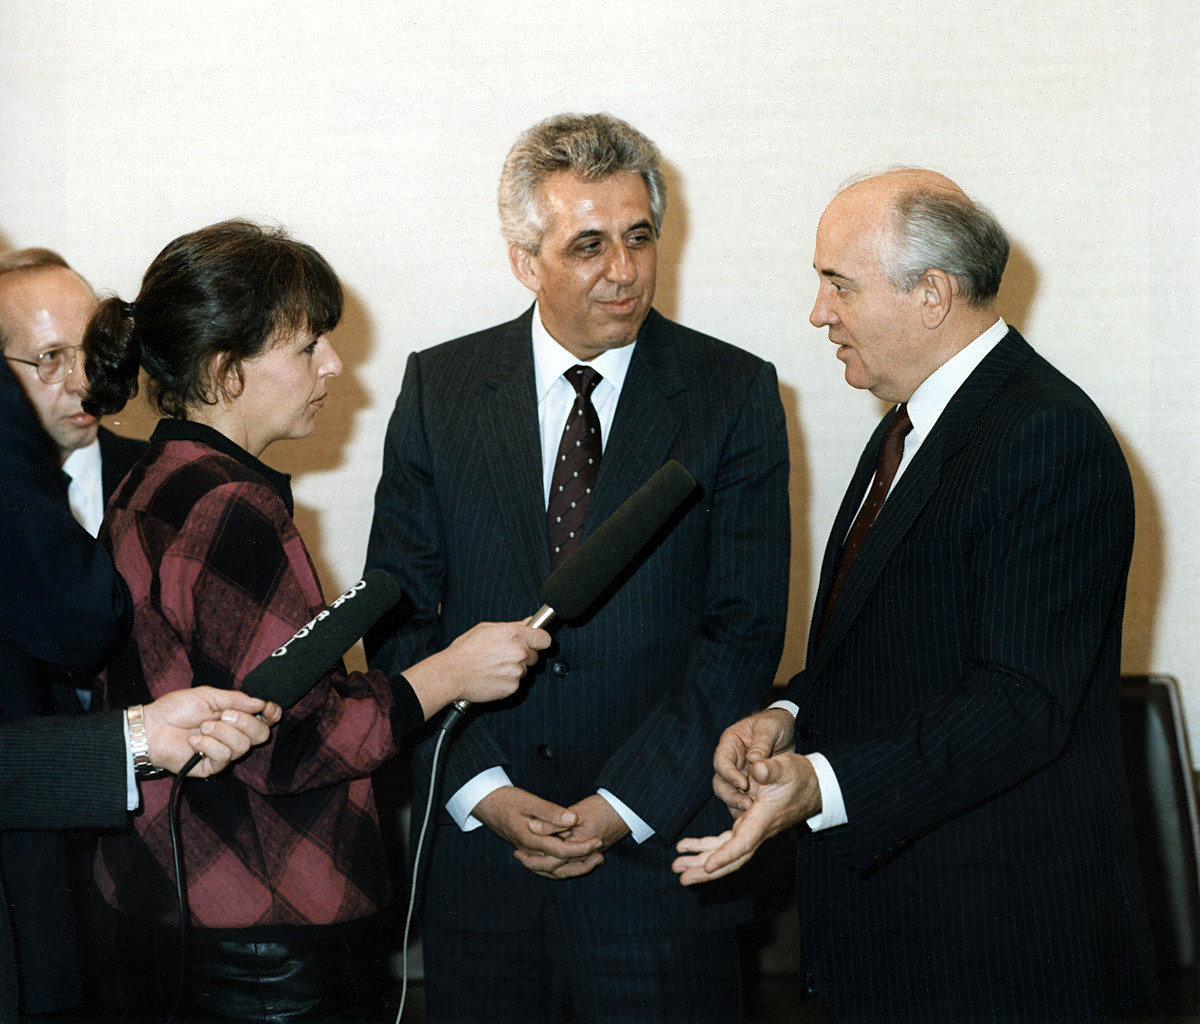 Gorbachev meeting Egon Krenz, East Germany's last leader.